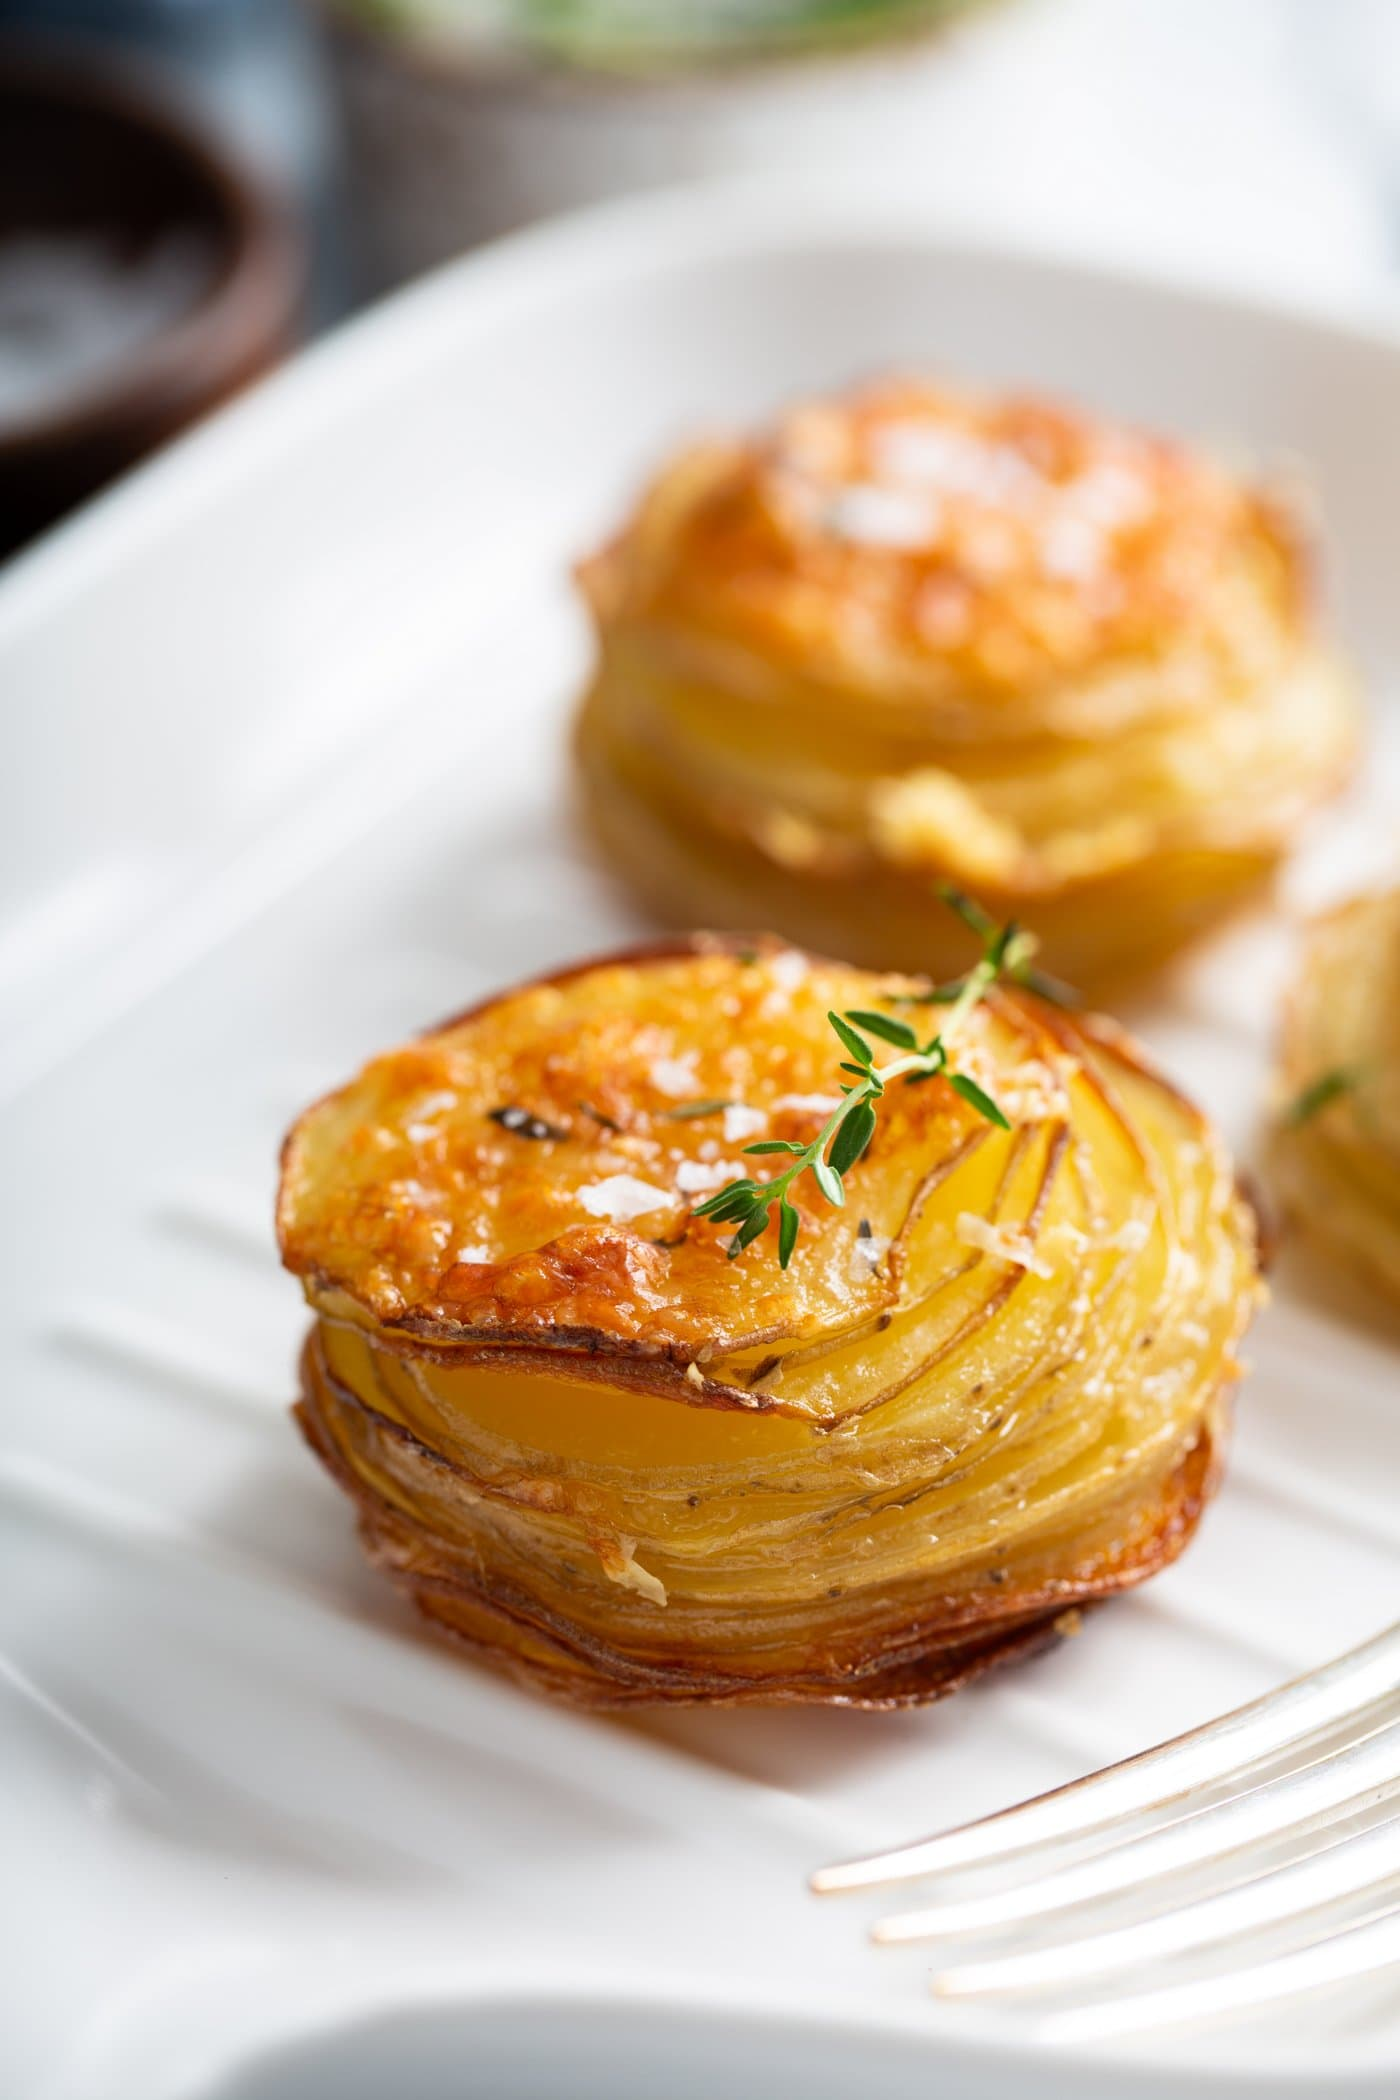 Two stacks of gruyere potatoes. They are shaped like muffins and they are baked to a golden brown.